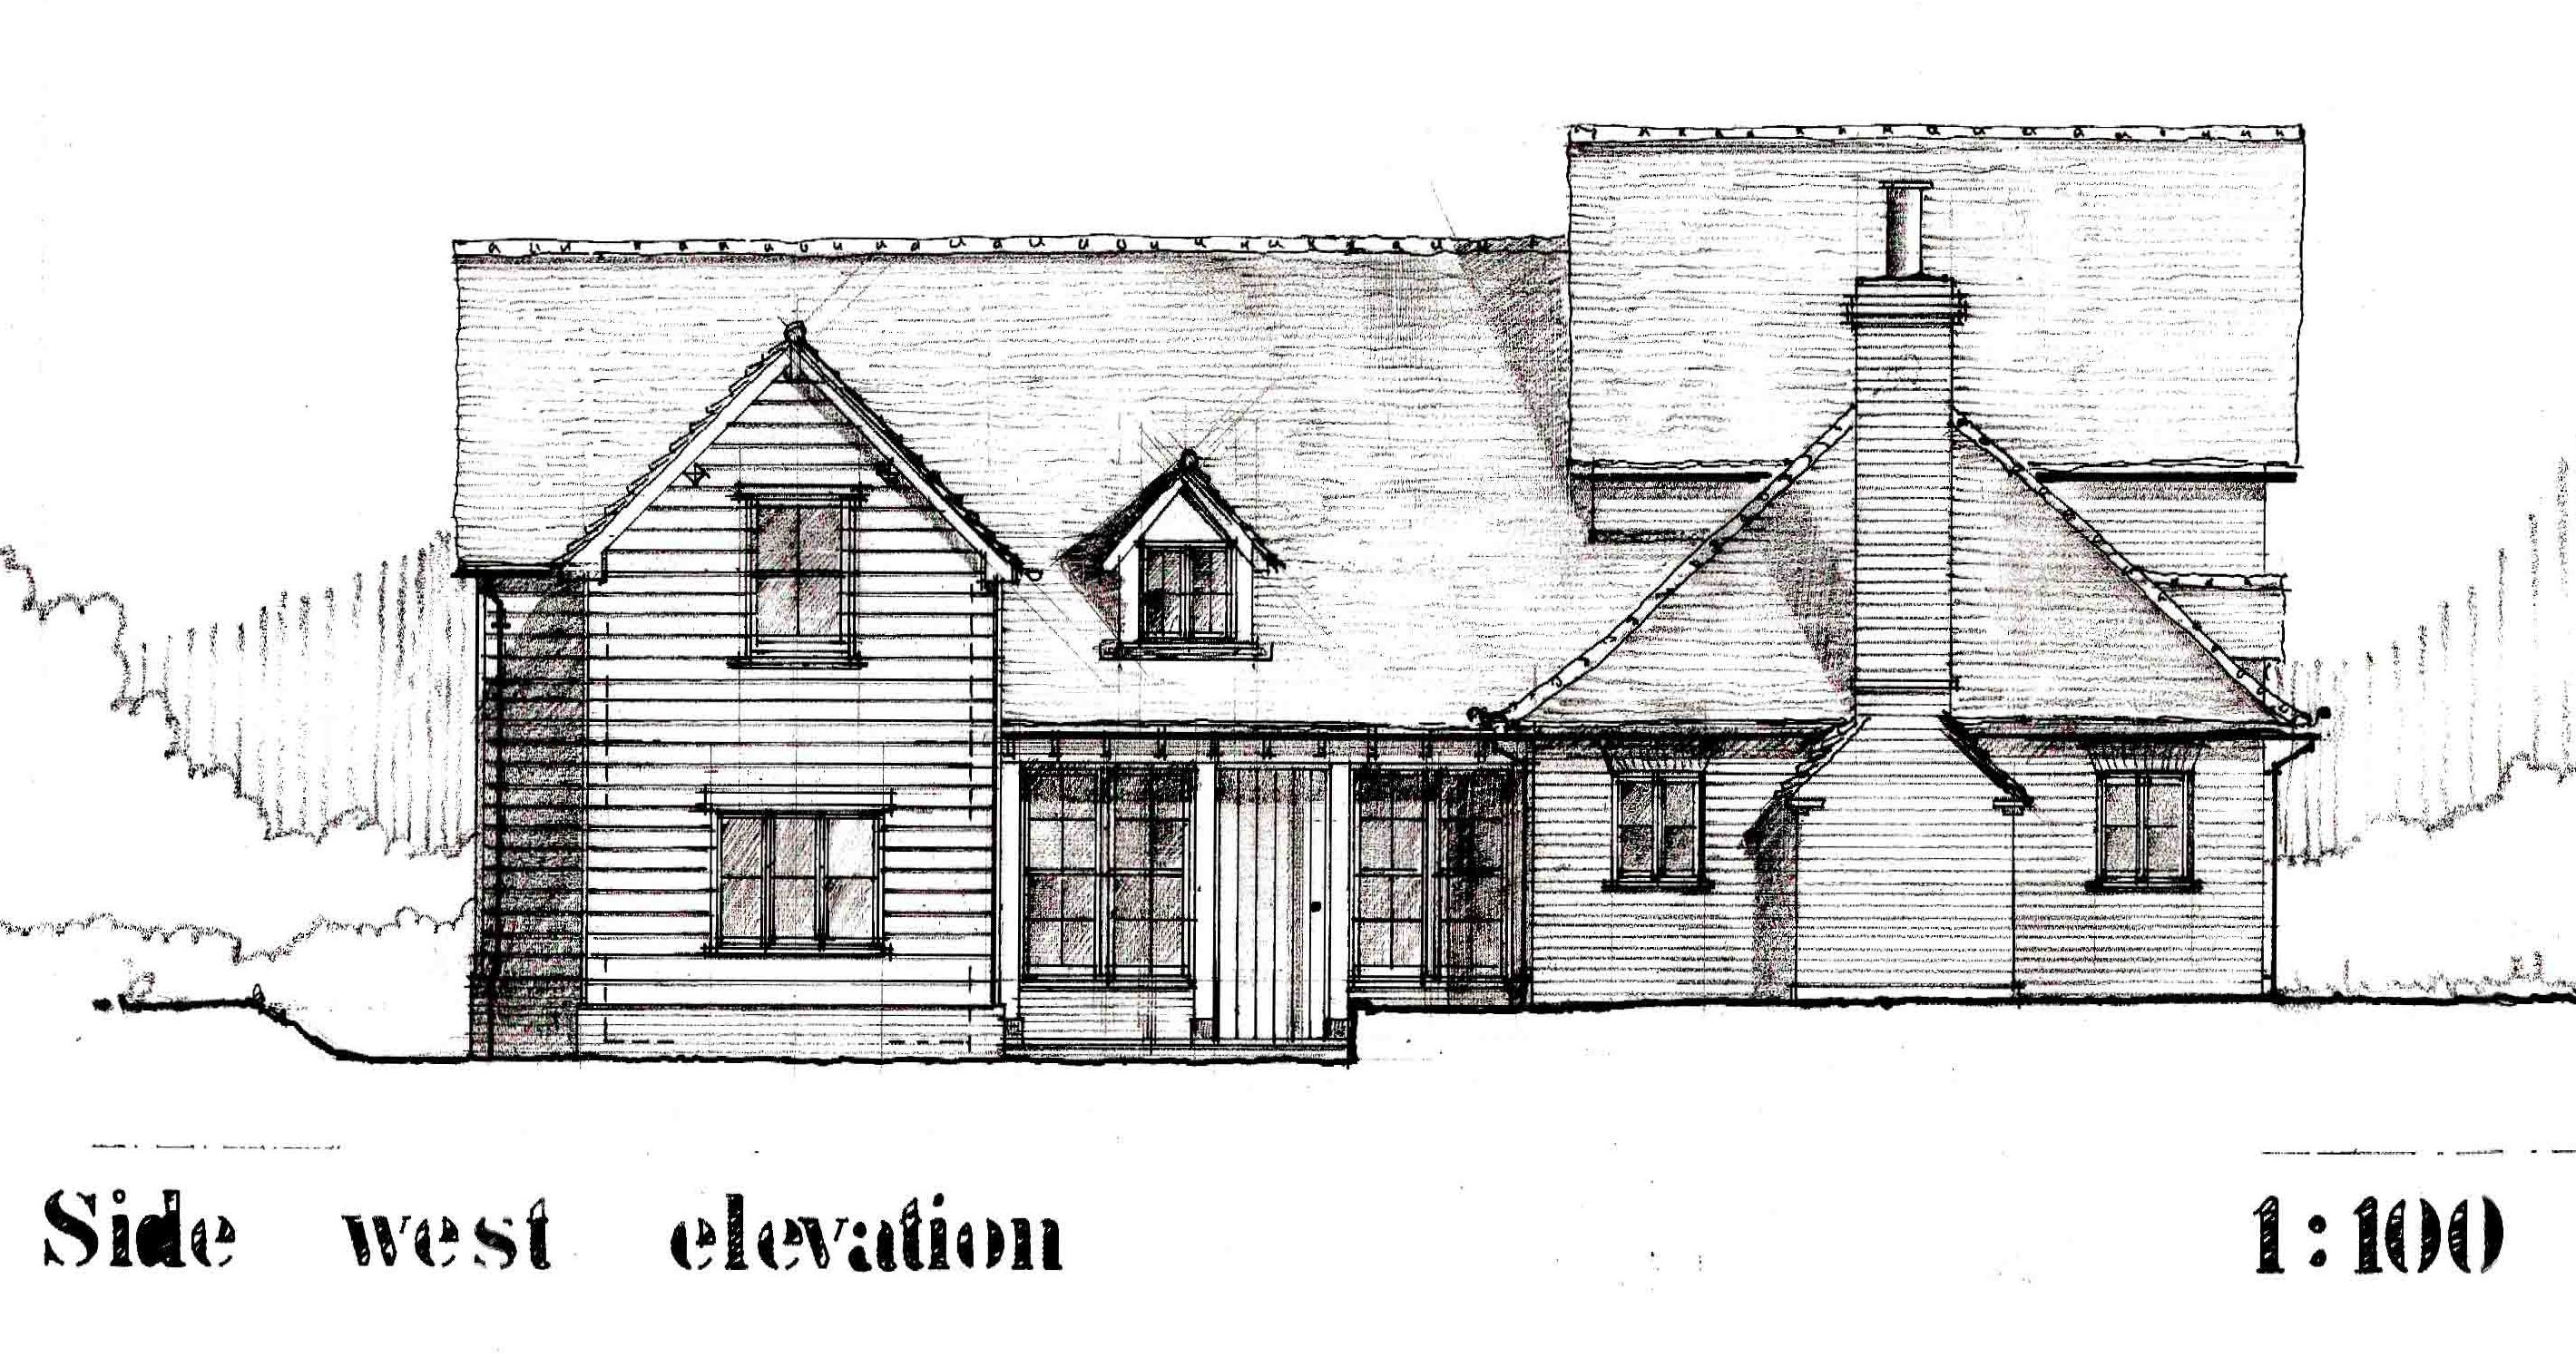 House Elevation Drawing Front Side : Rectory stables wicken house bonhunt ian